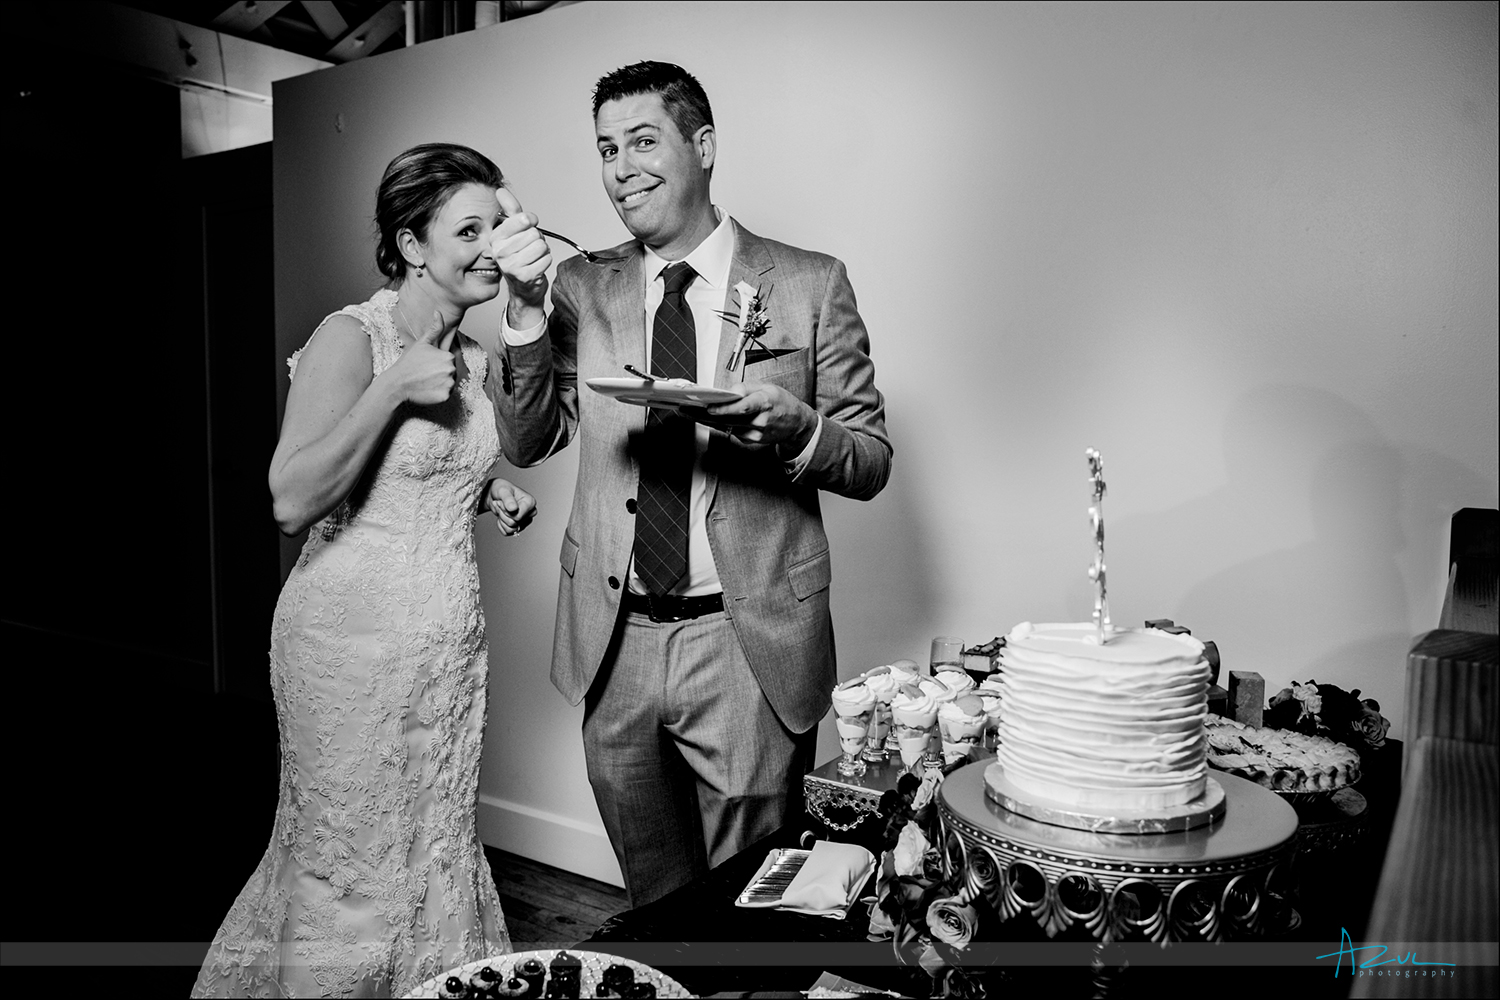 Cute wedding day cake cutting photograph at The Stockroom in Raleigh, North Carolina